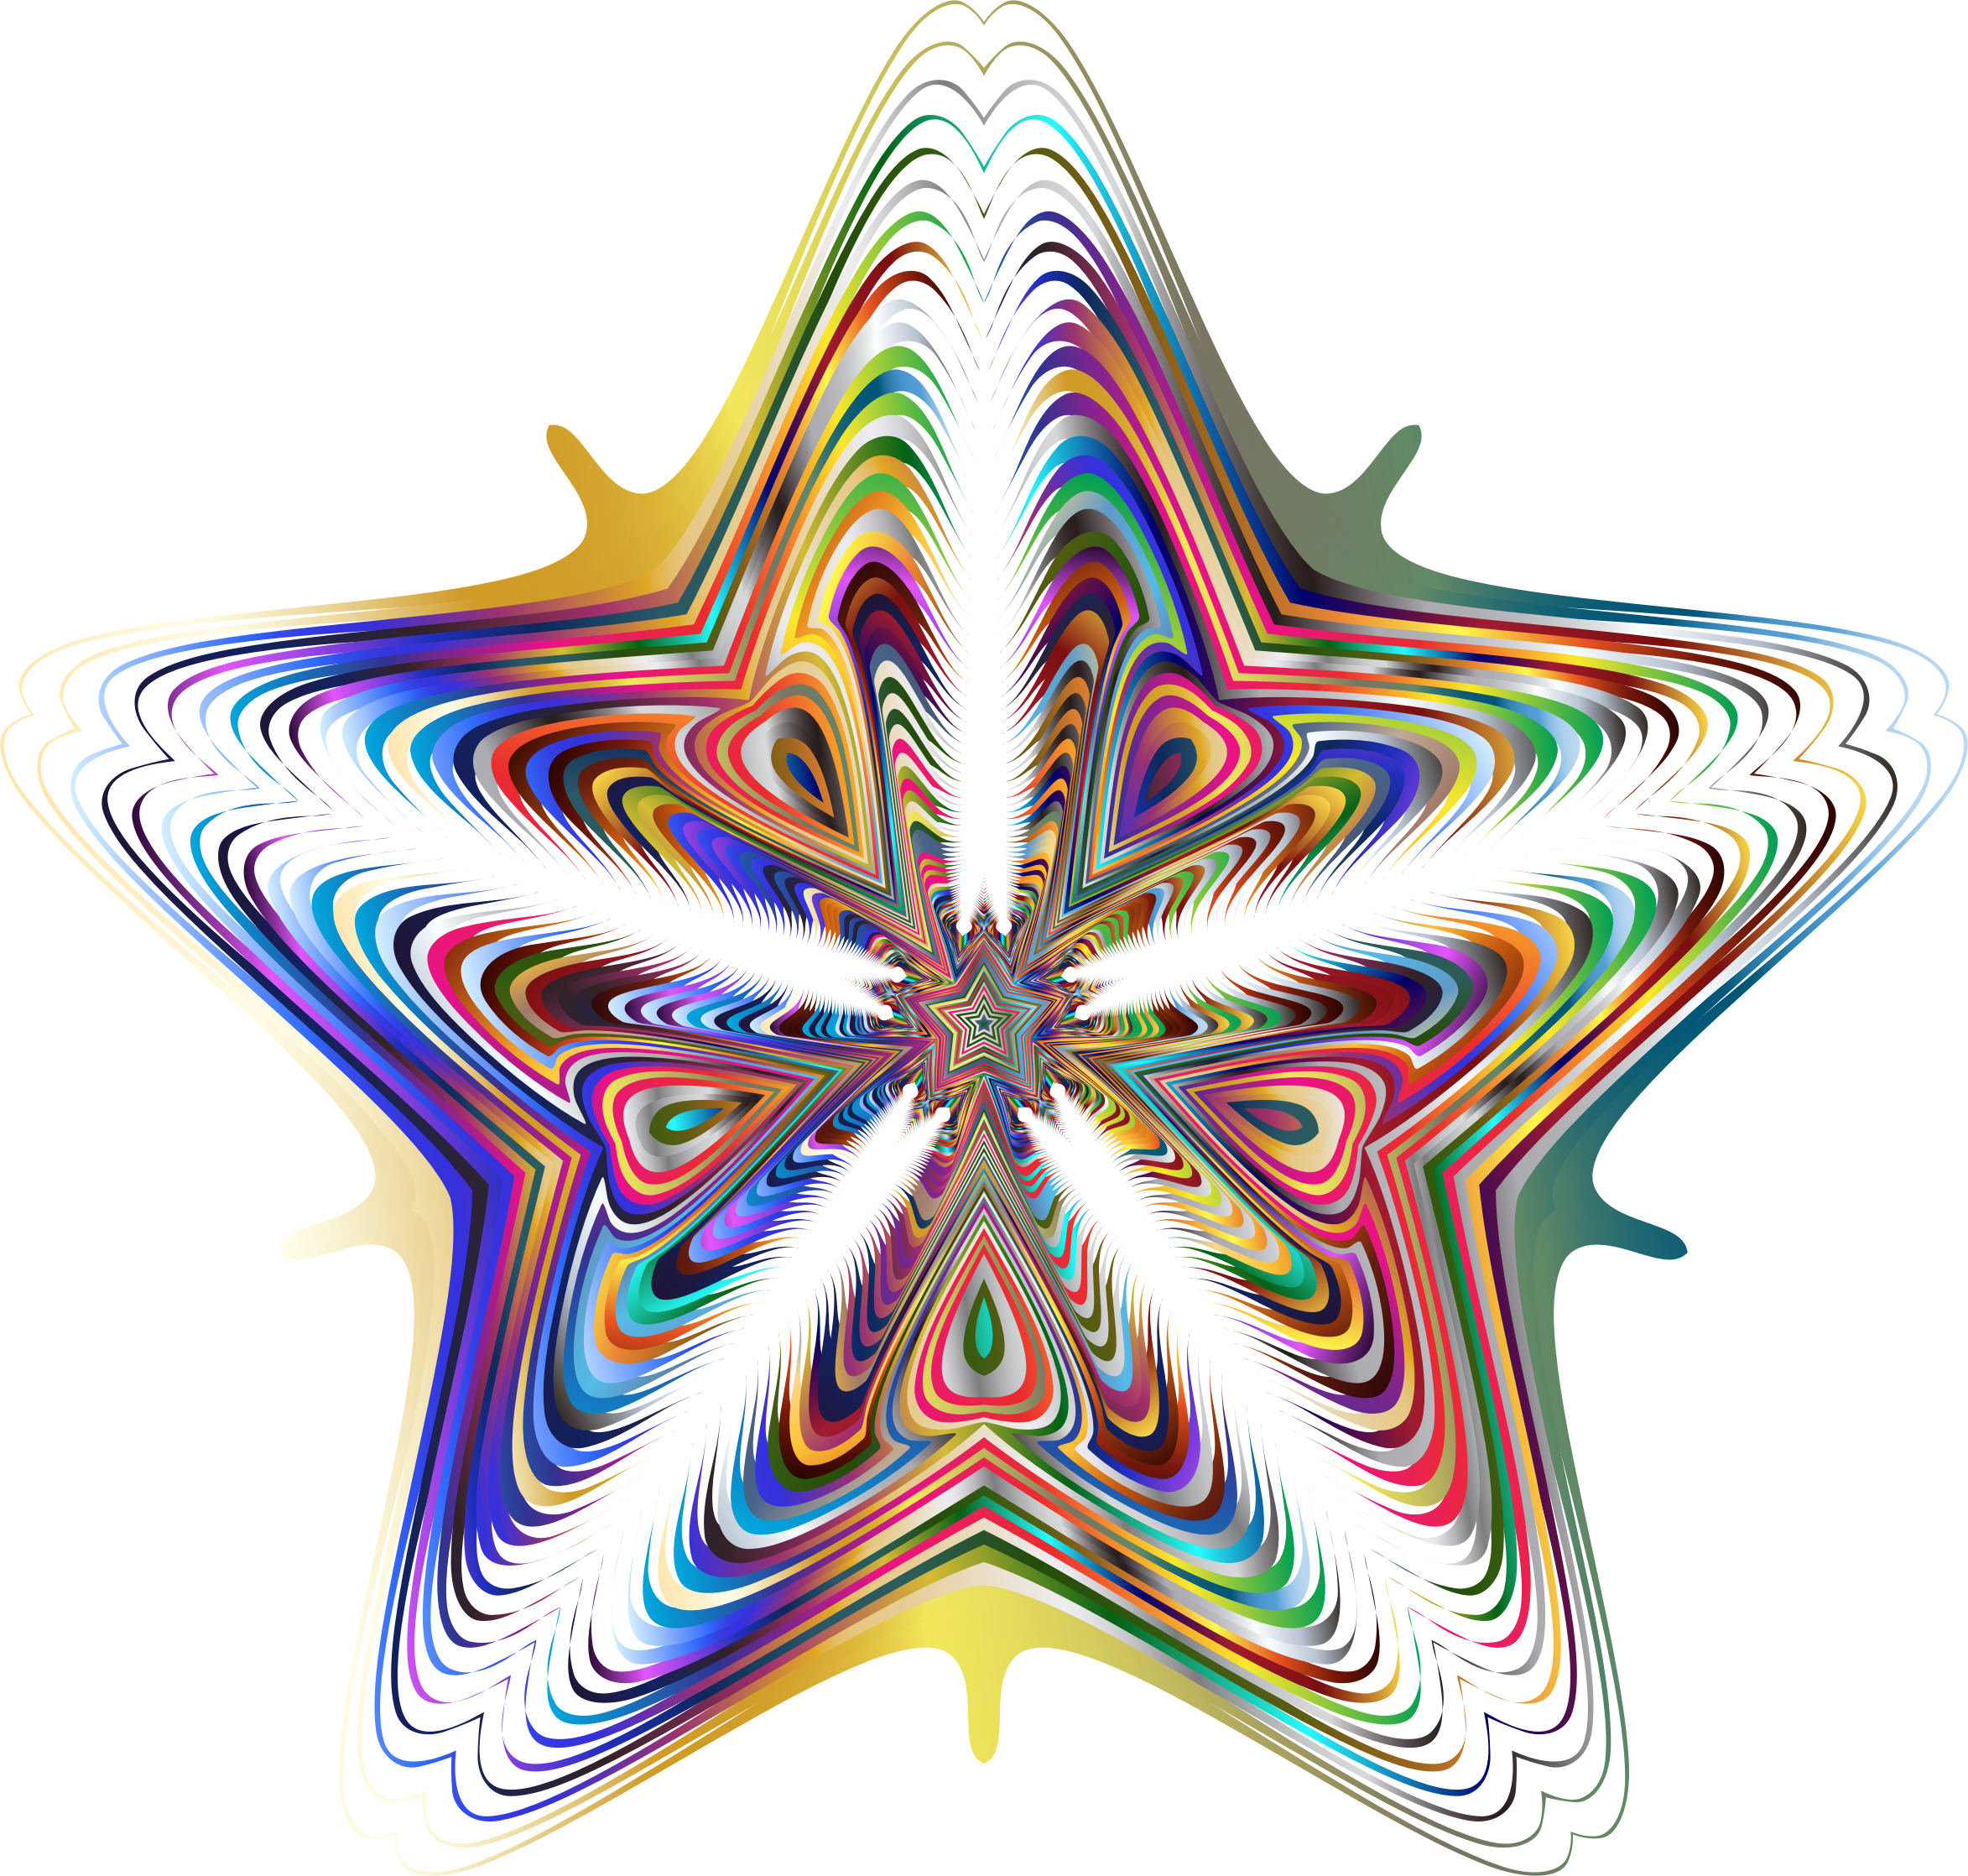 Prismatic Star Line Art 5 No Background by GDJ